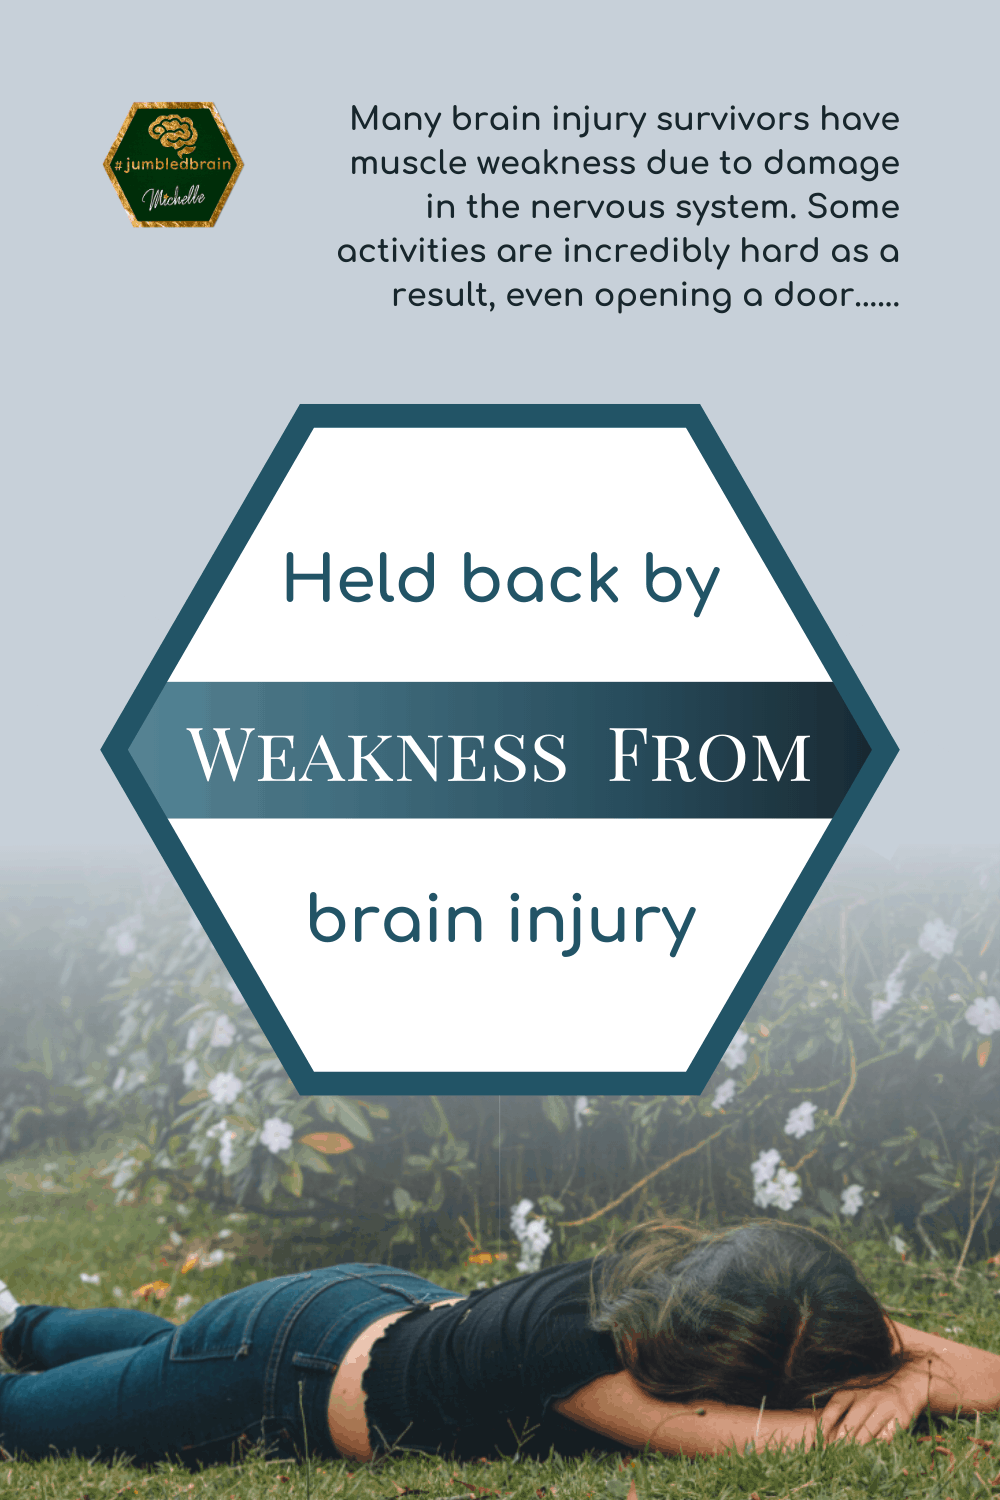 Held back by weakness from brain injury Strength is